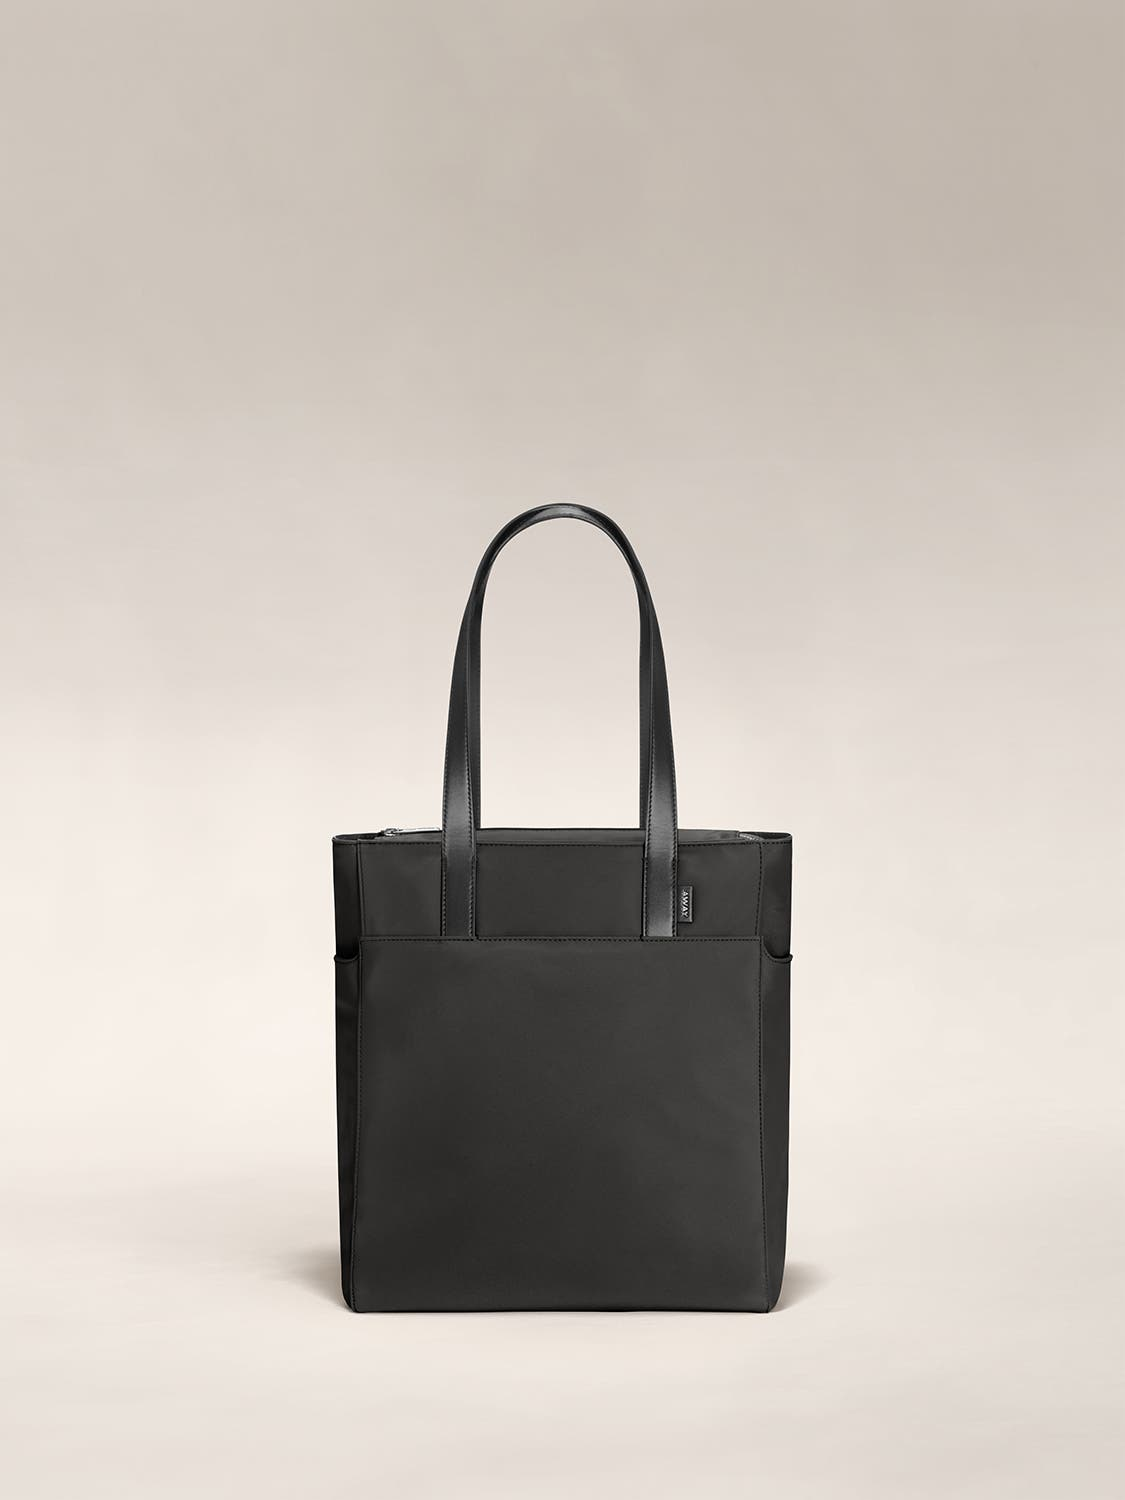 A black zip tote with leather handles raised.